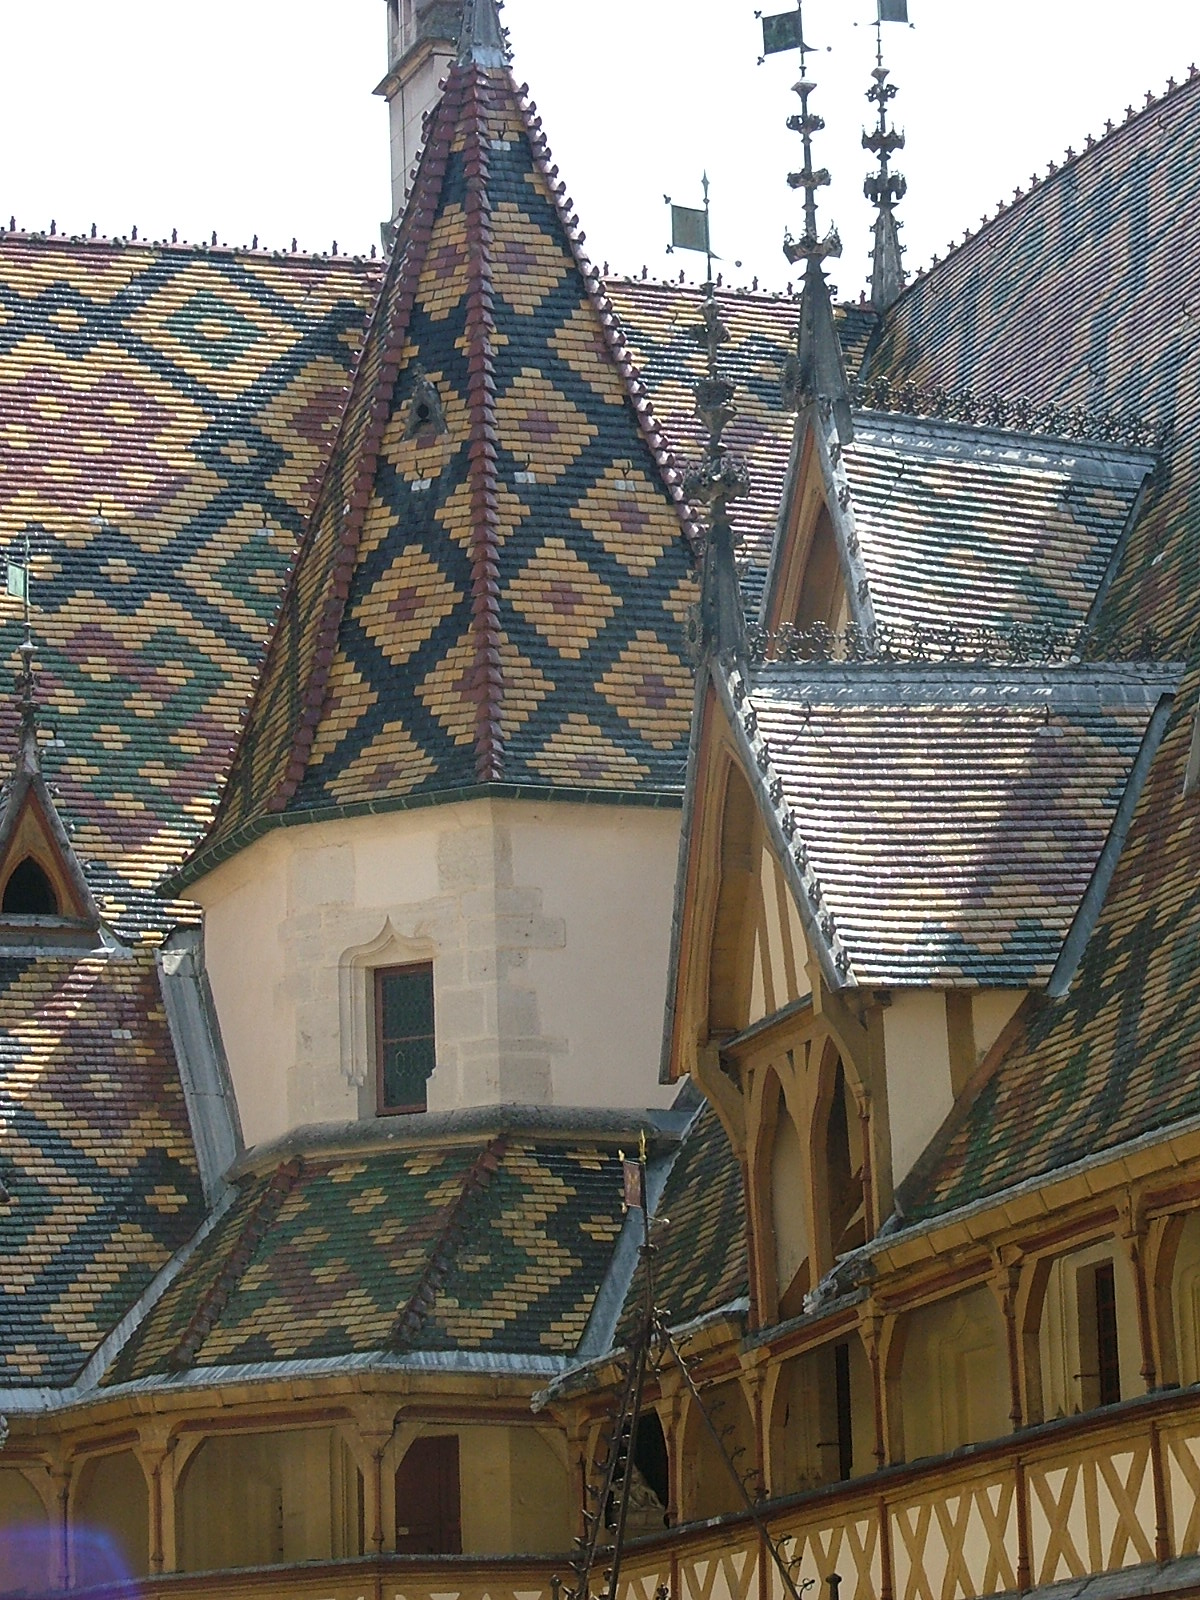 Hospices de Beaune2 - m.seckar